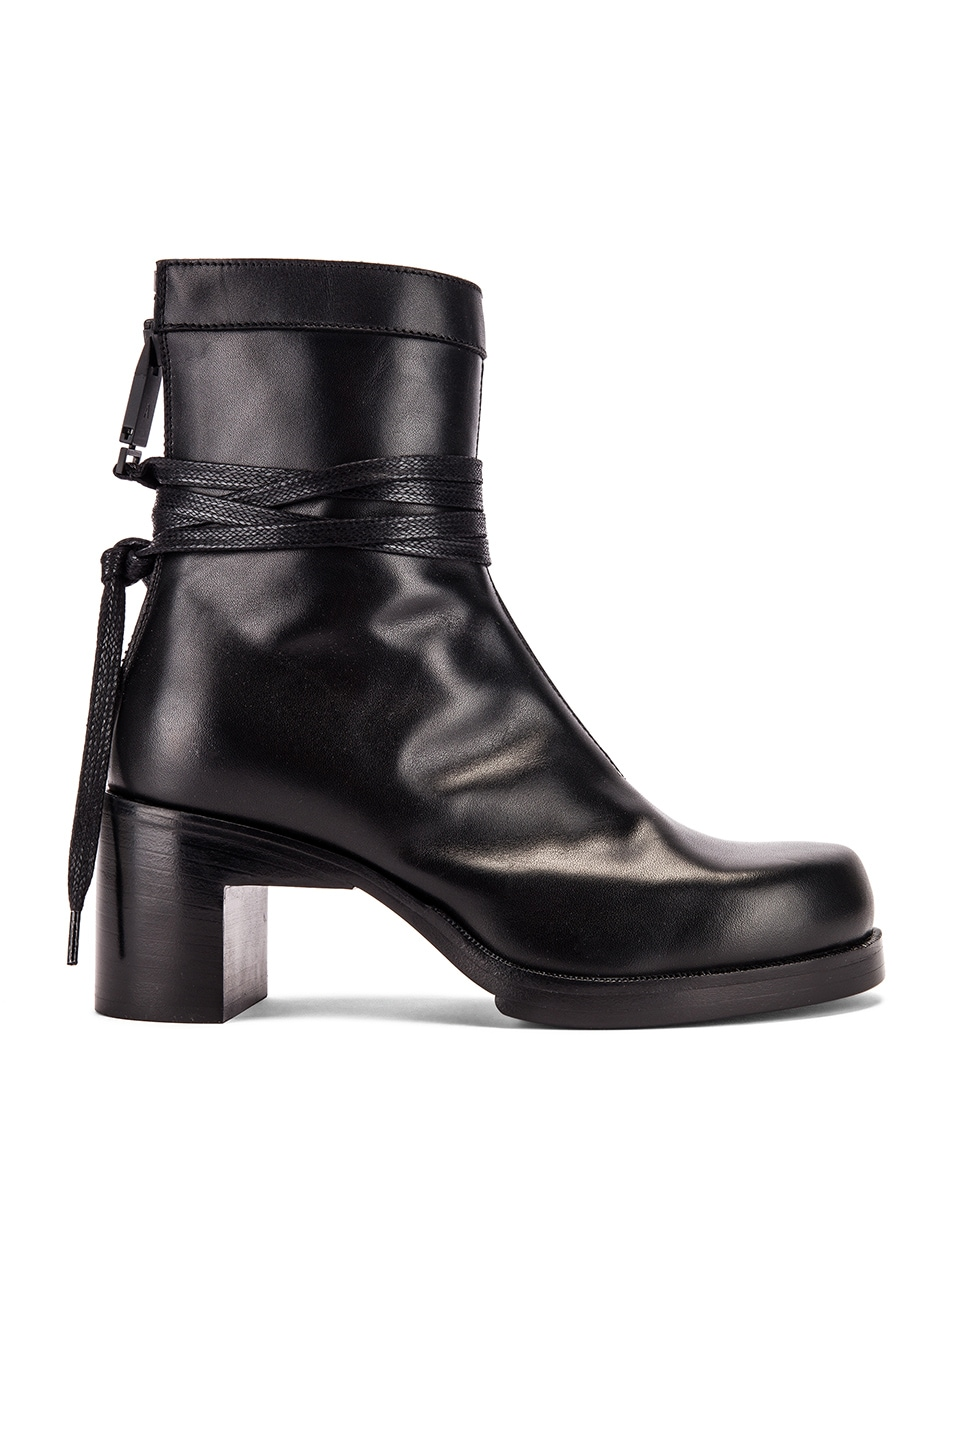 Image 1 of 1017 ALYX 9SM Bowie Boots in Black